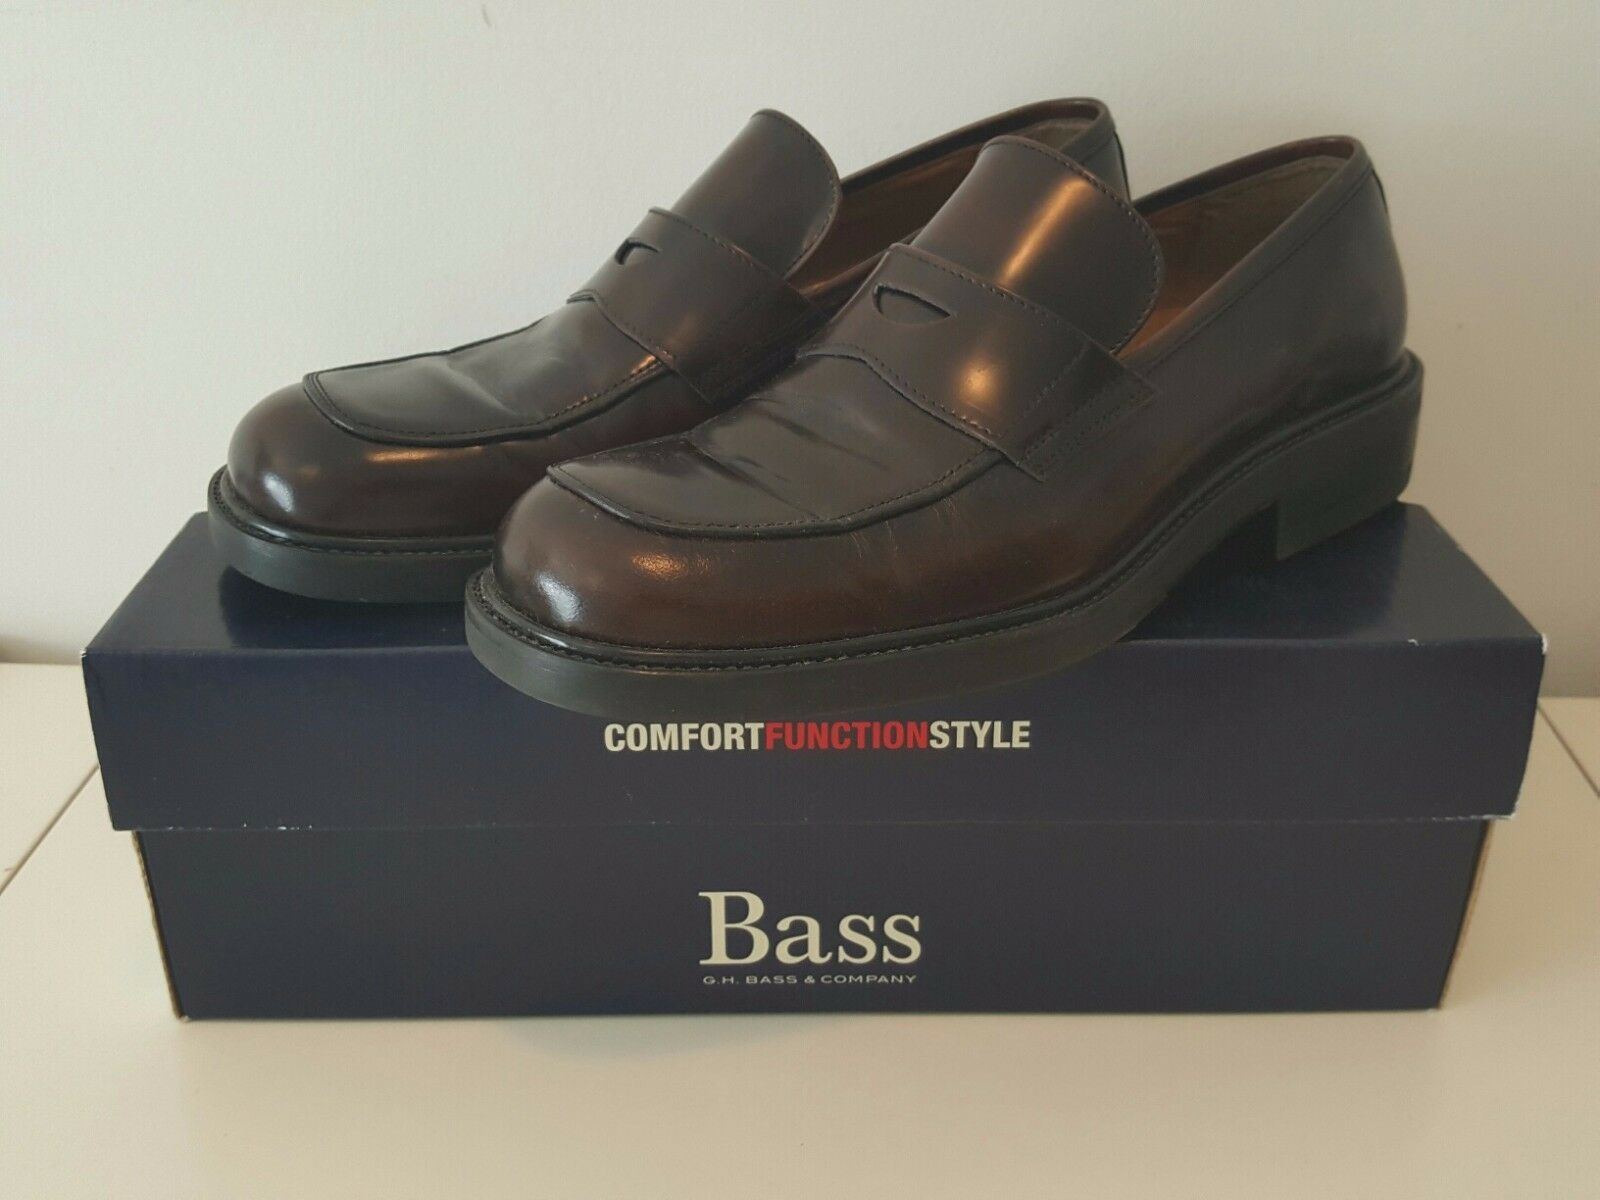 uomo Bass Leather Dress Shoes Penny Loafer - Brown Size 8/8.5 (Made in Italy) Scarpe classiche da uomo